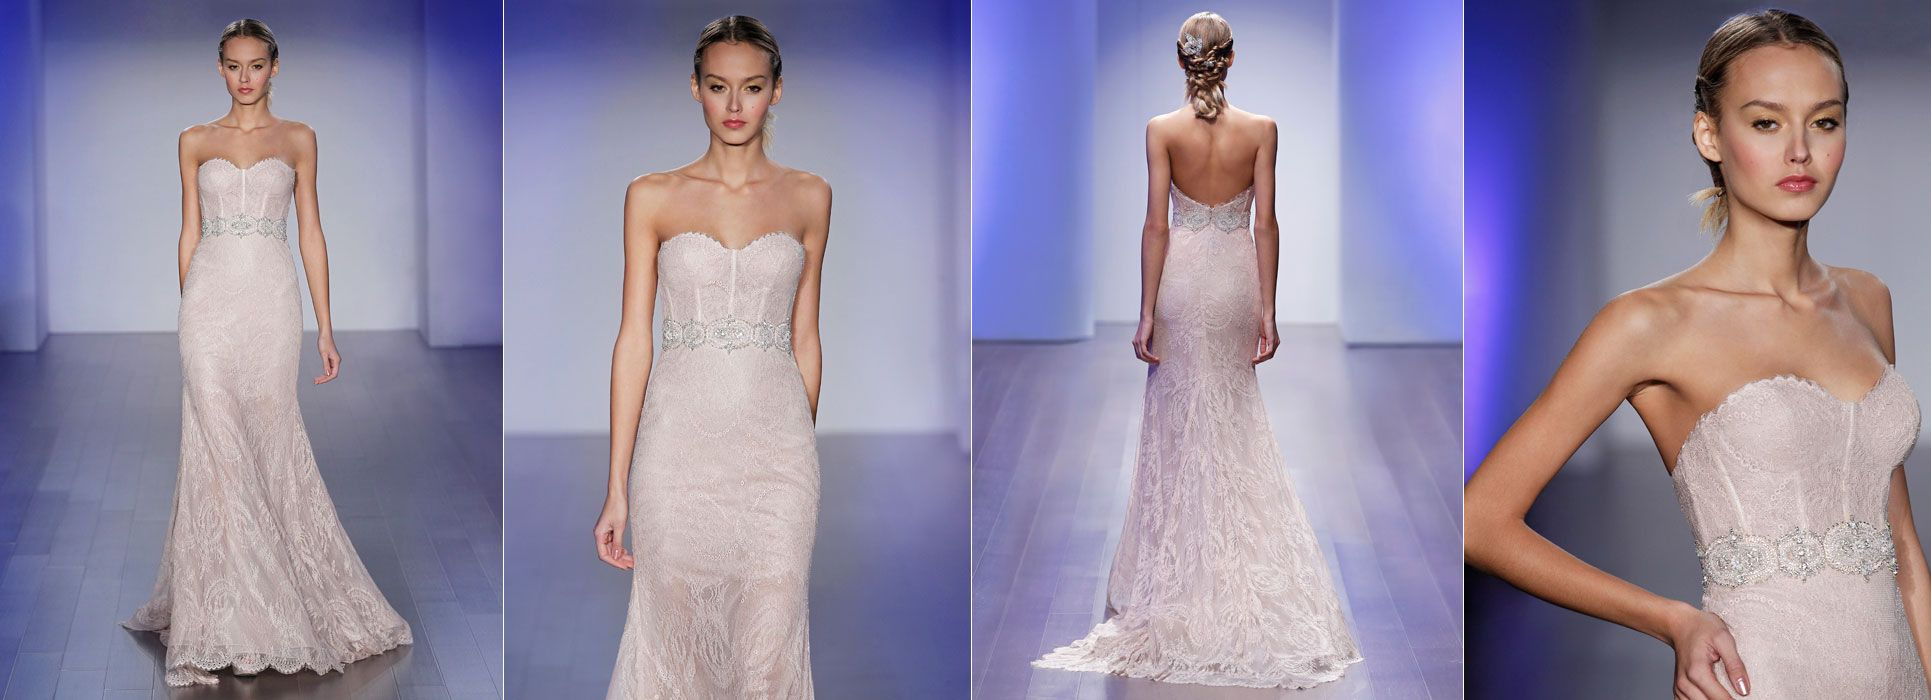 Rose Chantilly Lace Trumpet Bridal Gown, Sheer Corseted